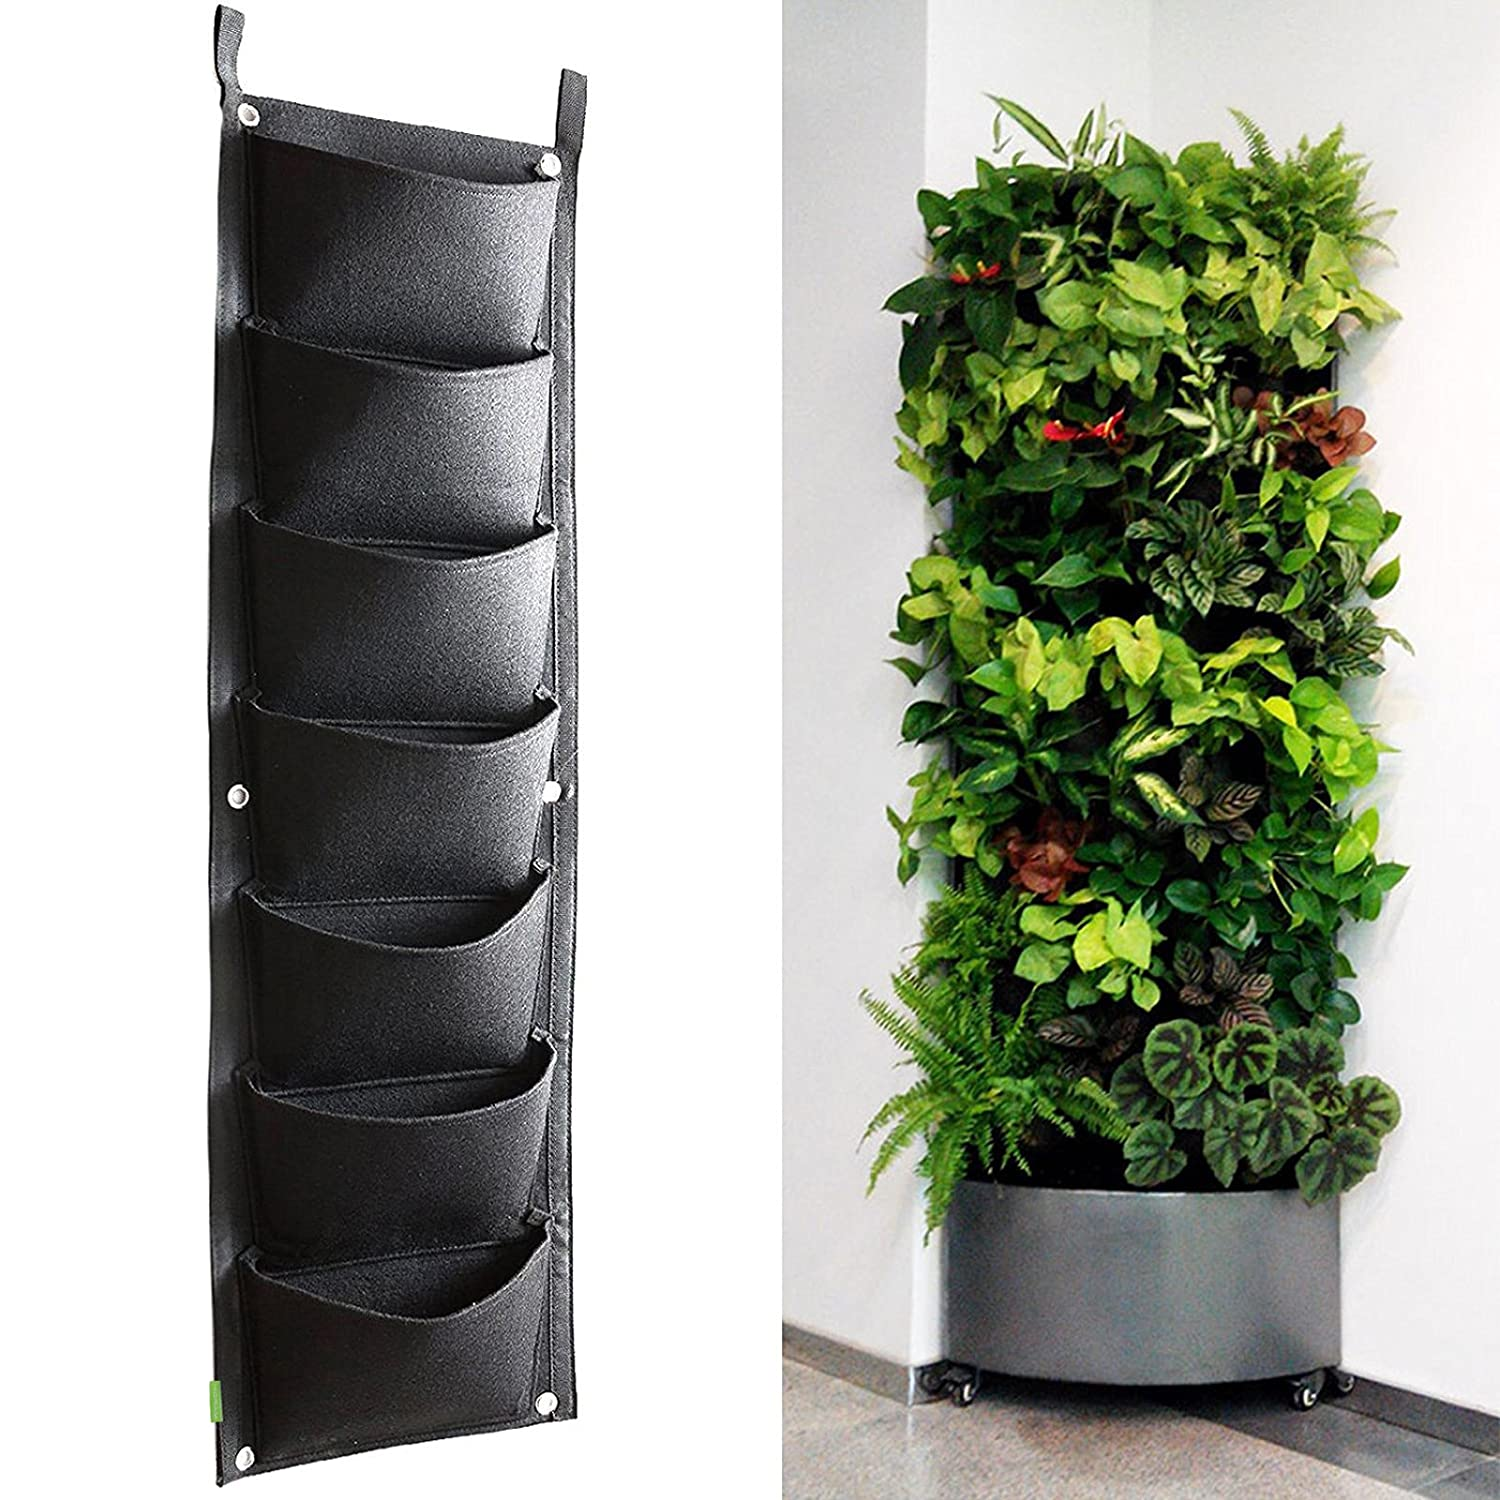 KORAM 7 Pockets Vertical Garden Wall Planter Living Hanging Flower Pouch  Green Field Pot Felt Indoor/Outdoor Wall Mount Balcony Plant Grow Bag for  Herbs ...